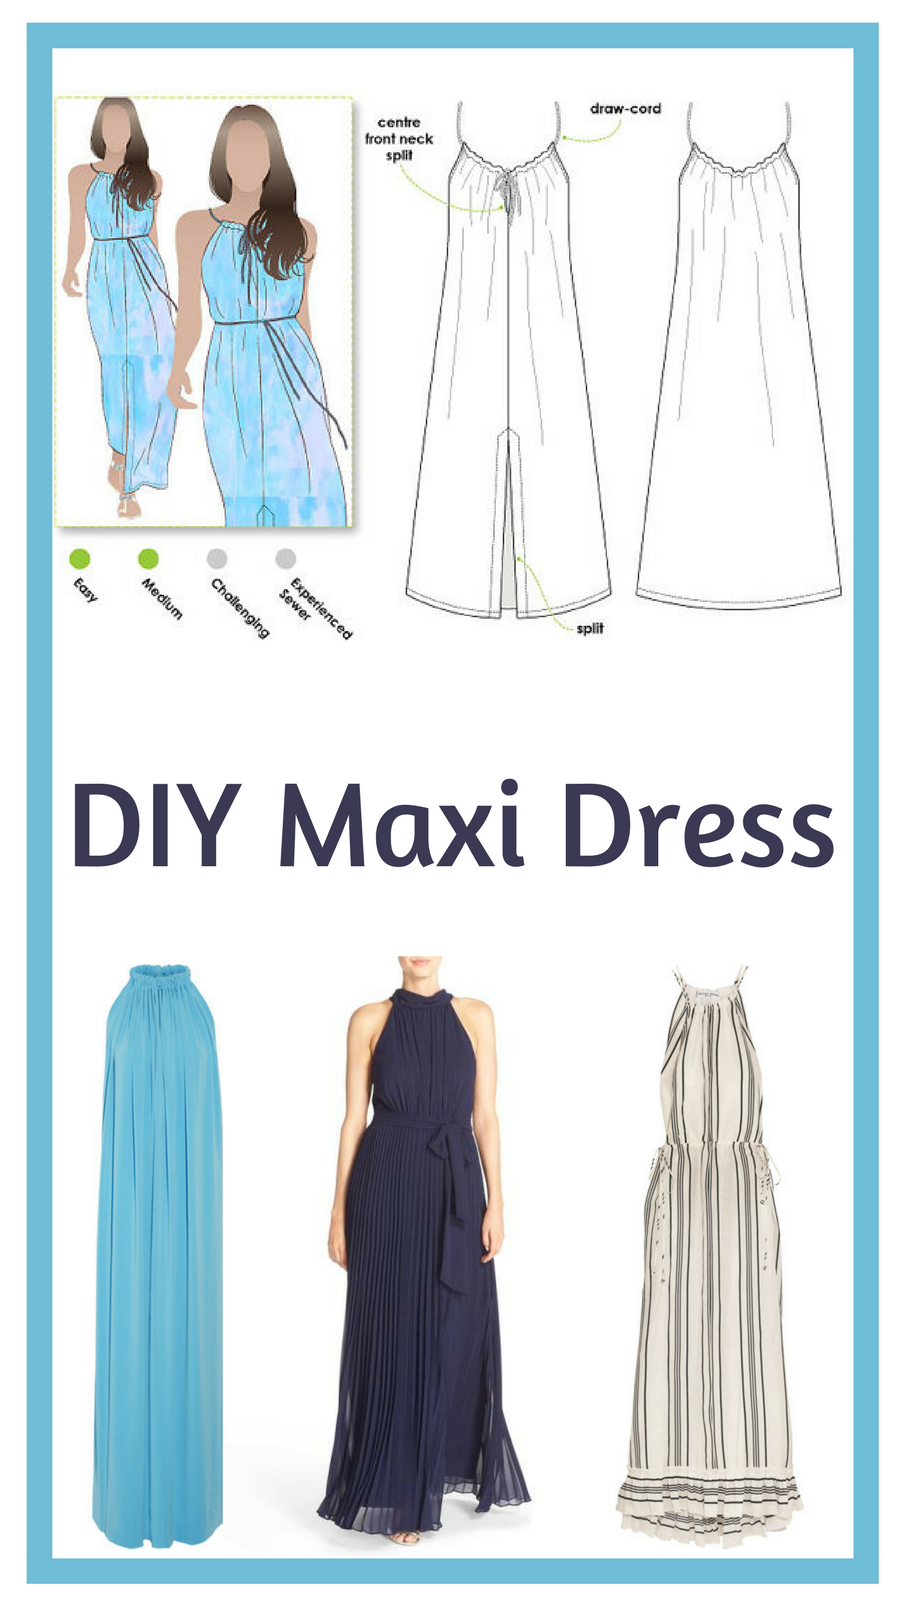 I love maxi dresses for the summer. Cool sewing pattern. afflink ...